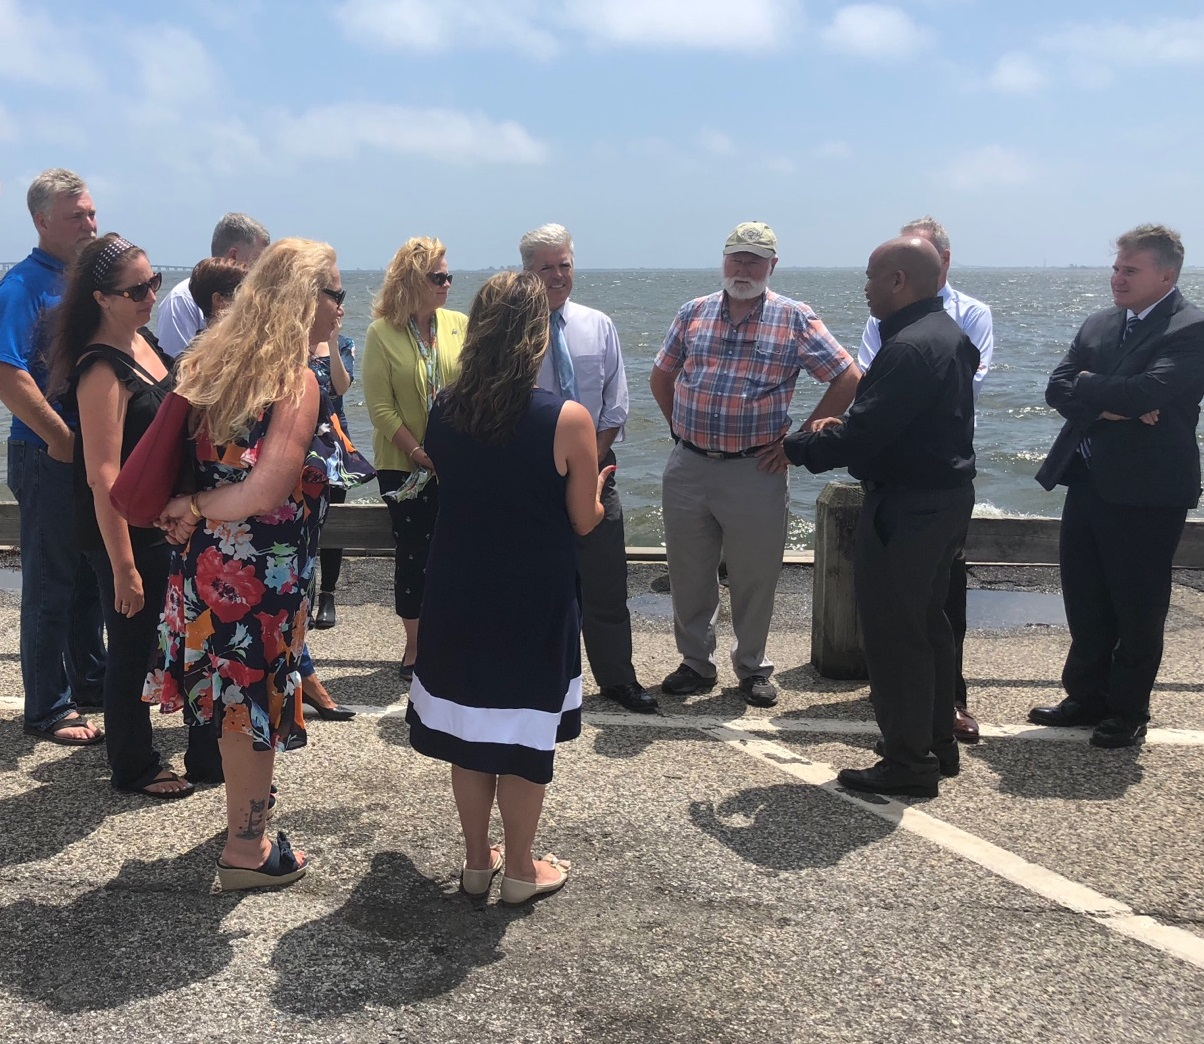 Pictured with Speaker Heastie in the second photo at the Babylon Village Main Docks (from left to right): marine scientists and members of local non-profits, Assemblymember Christine Pellegrino, Suffolk County Executive Steve Bellone and Dr. Malcolm Bowman.